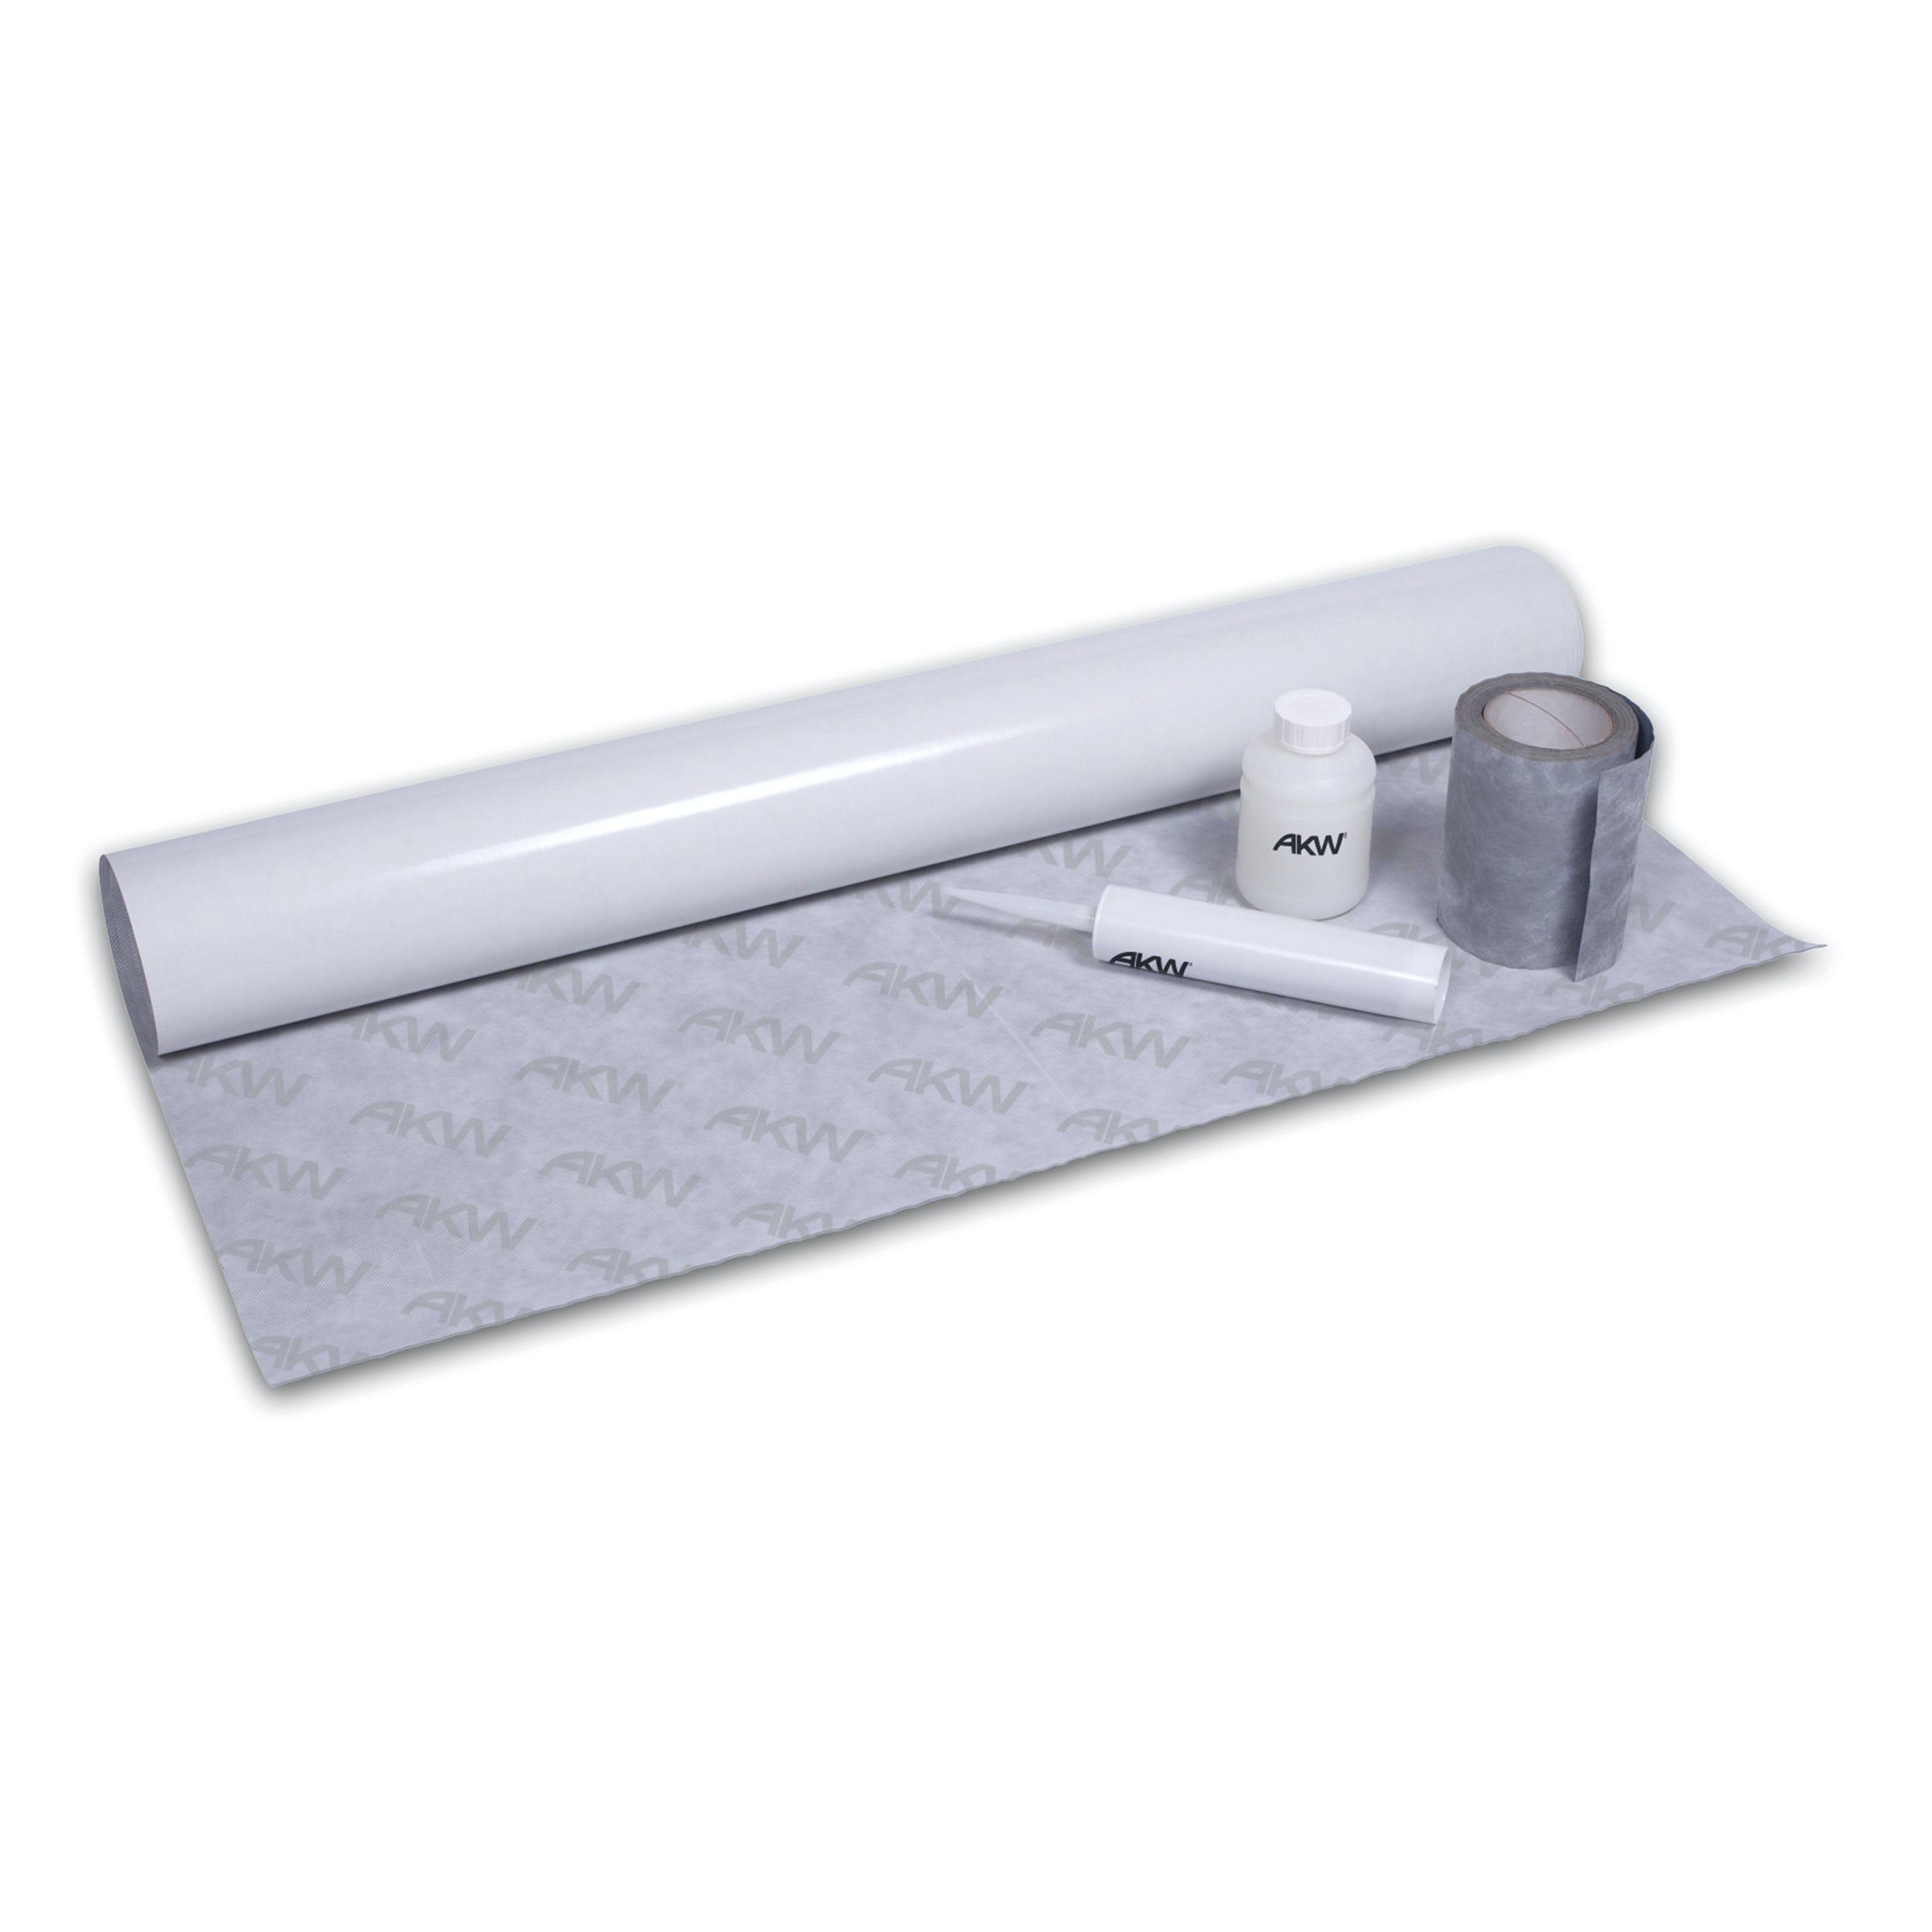 AKW Formsafe wet room tanking kit 5m sq - Sold by Victoria Plum